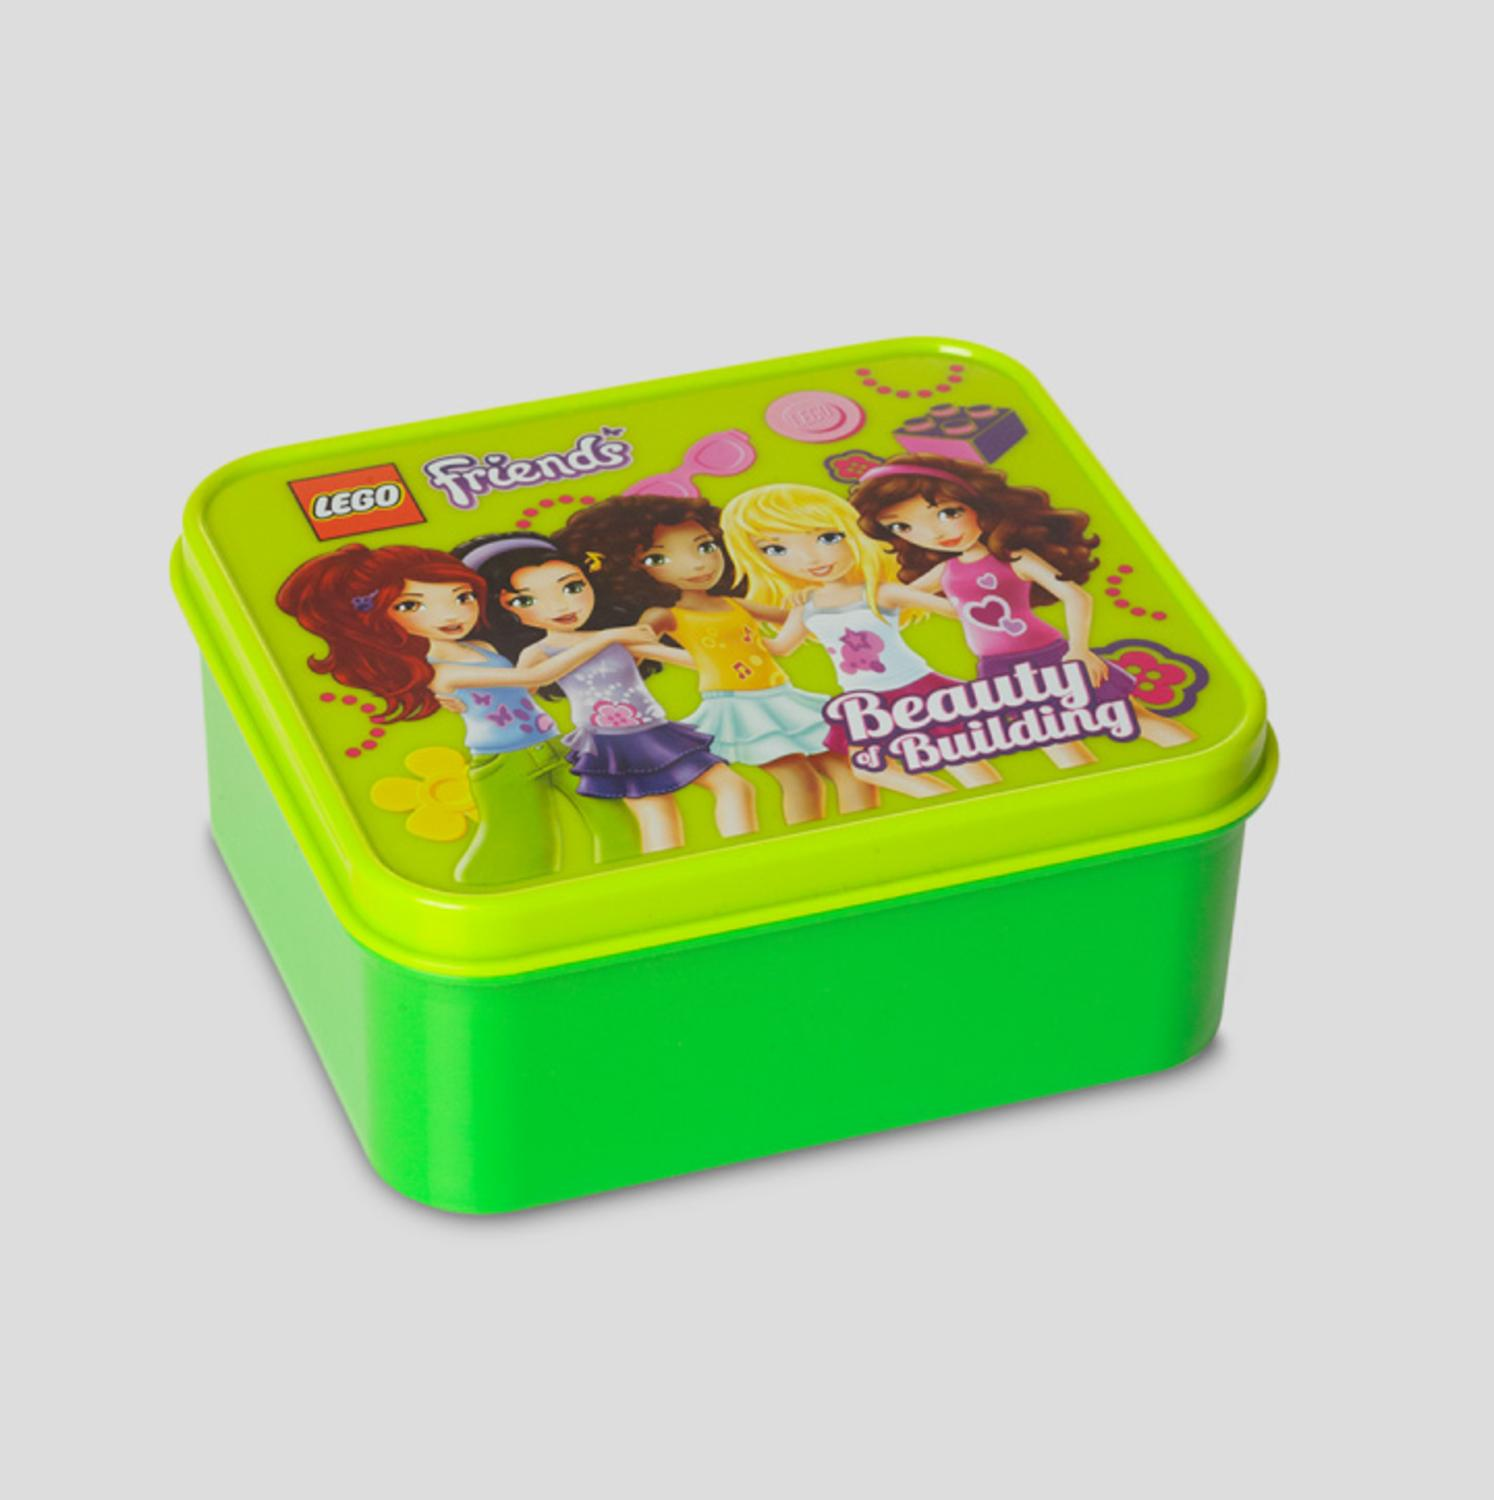 LEGO Friends Children's Bright Yellow Lime Green Lunch Box